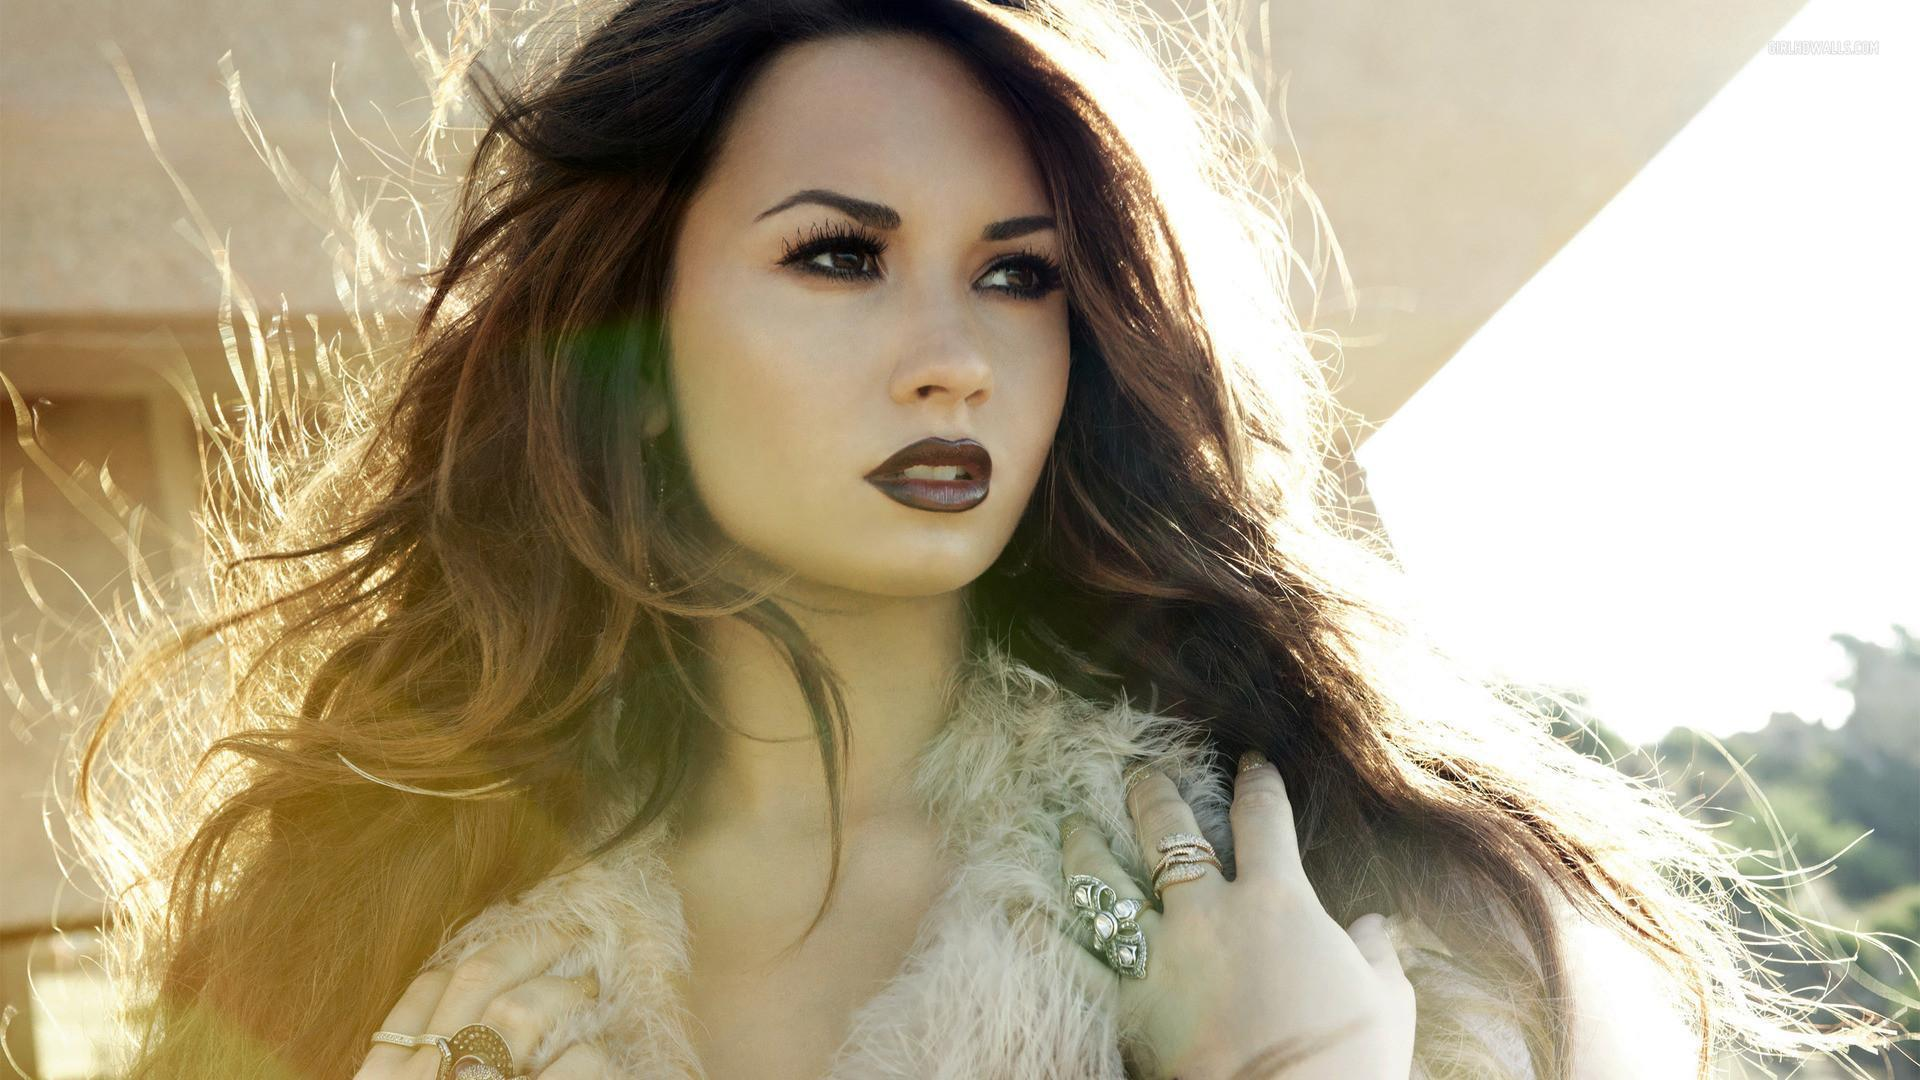 demi lovato wallpapers hd 2016 wallpaper cave